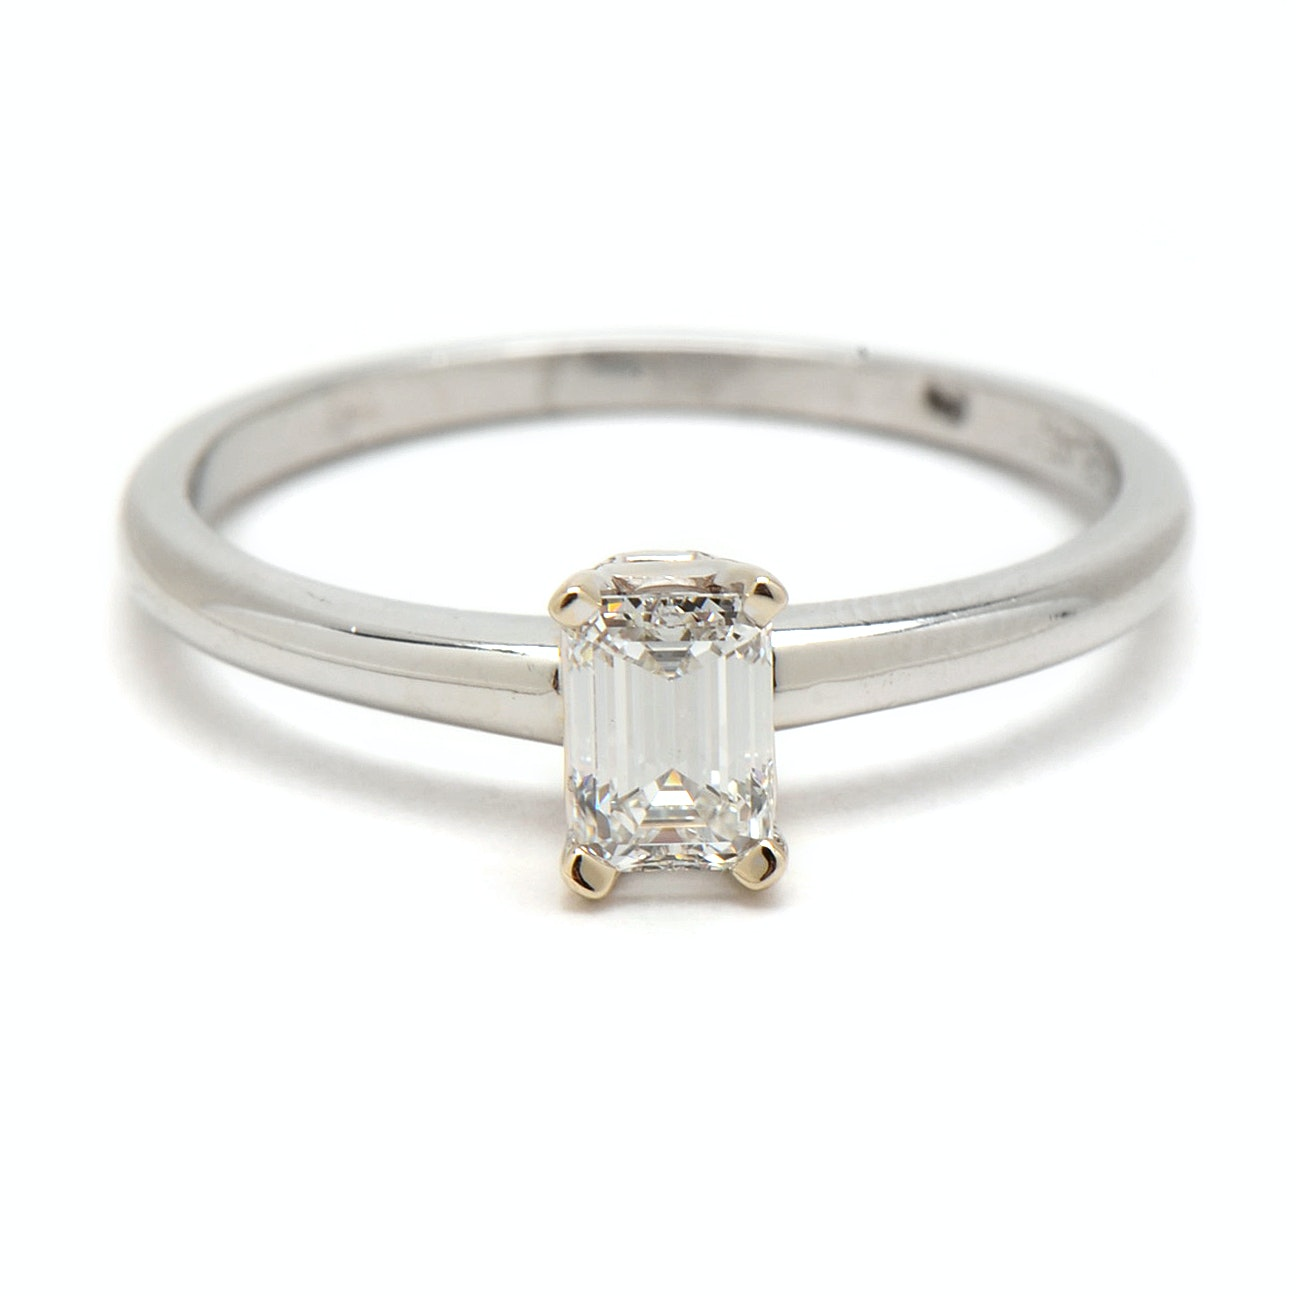 Platinum and 18K White Gold Emerald Cut Diamond Solitaire